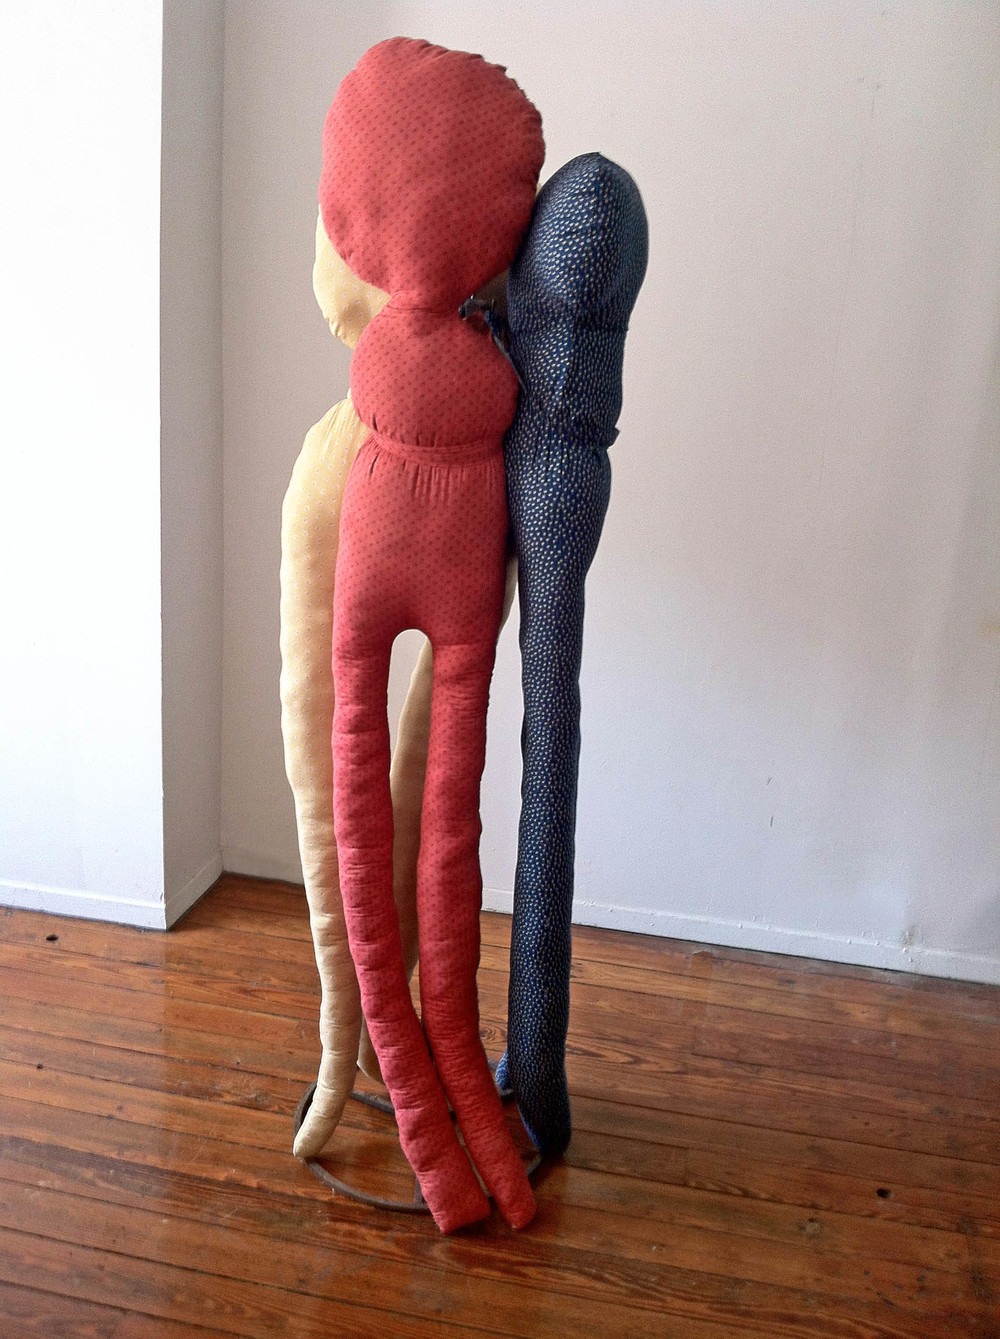 3graces, 2012, Cotton, polyester, steel and birdseed, 5 x 2 x 2 feet